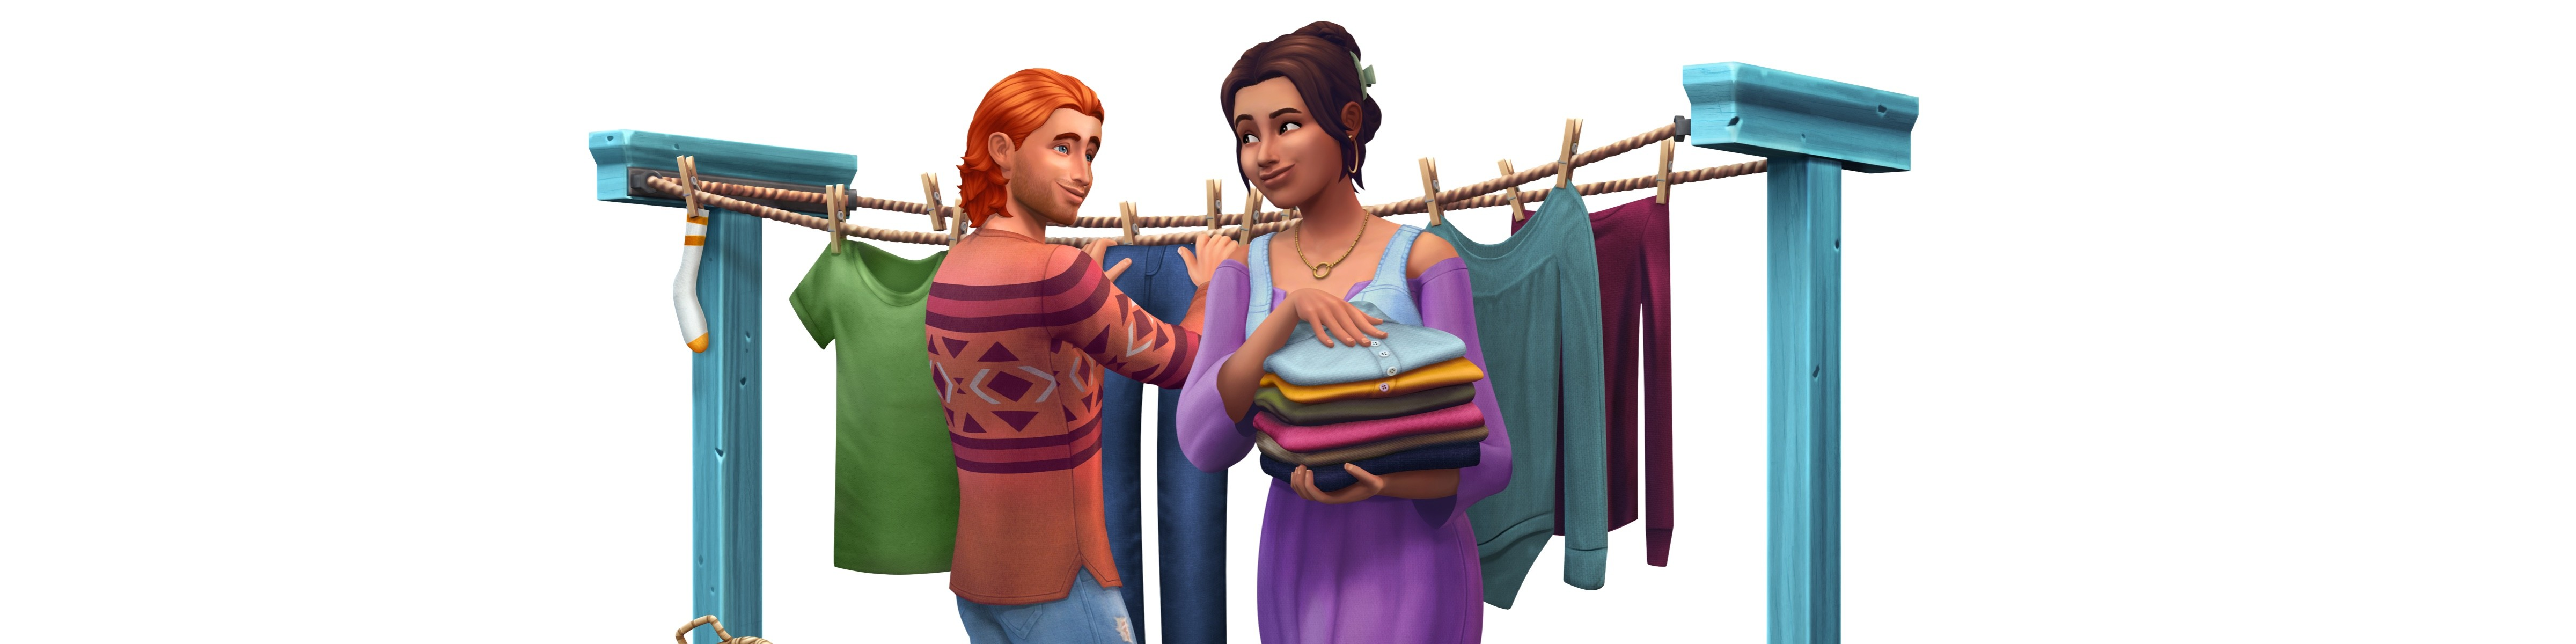 sims 4 download clothes mac